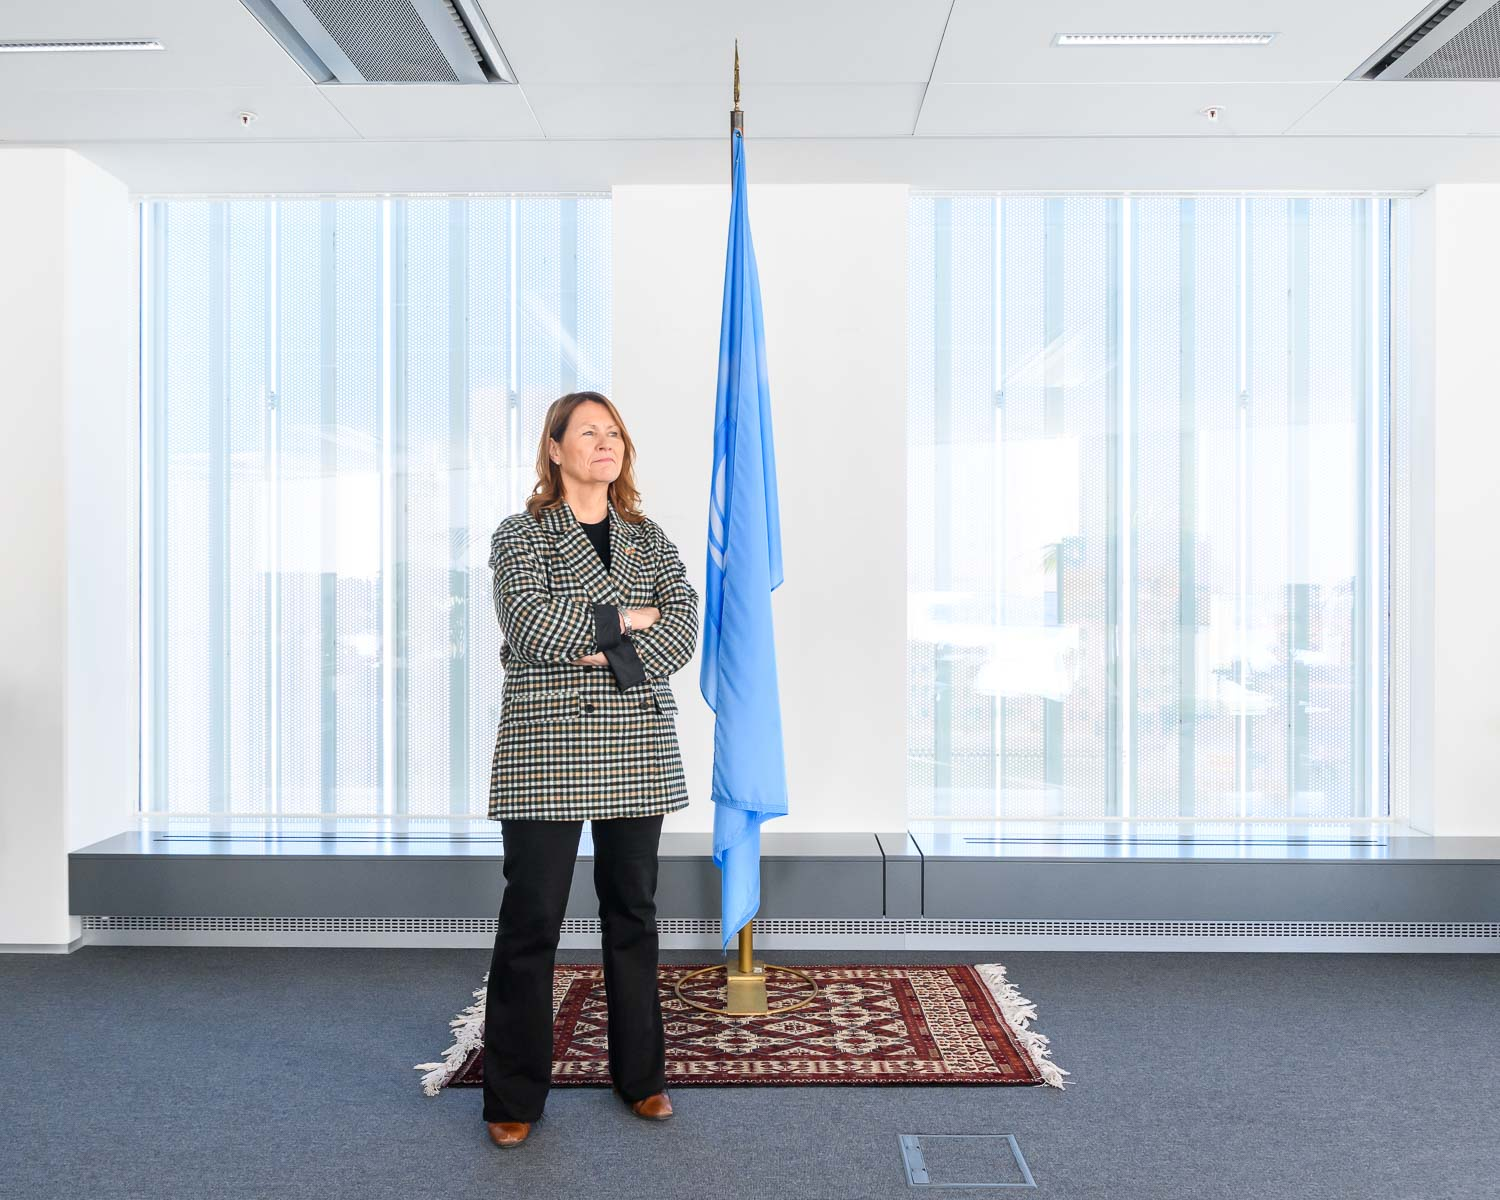 UNOPS Under-Secretary-General Grete Faremo shot for Harvard Business Review